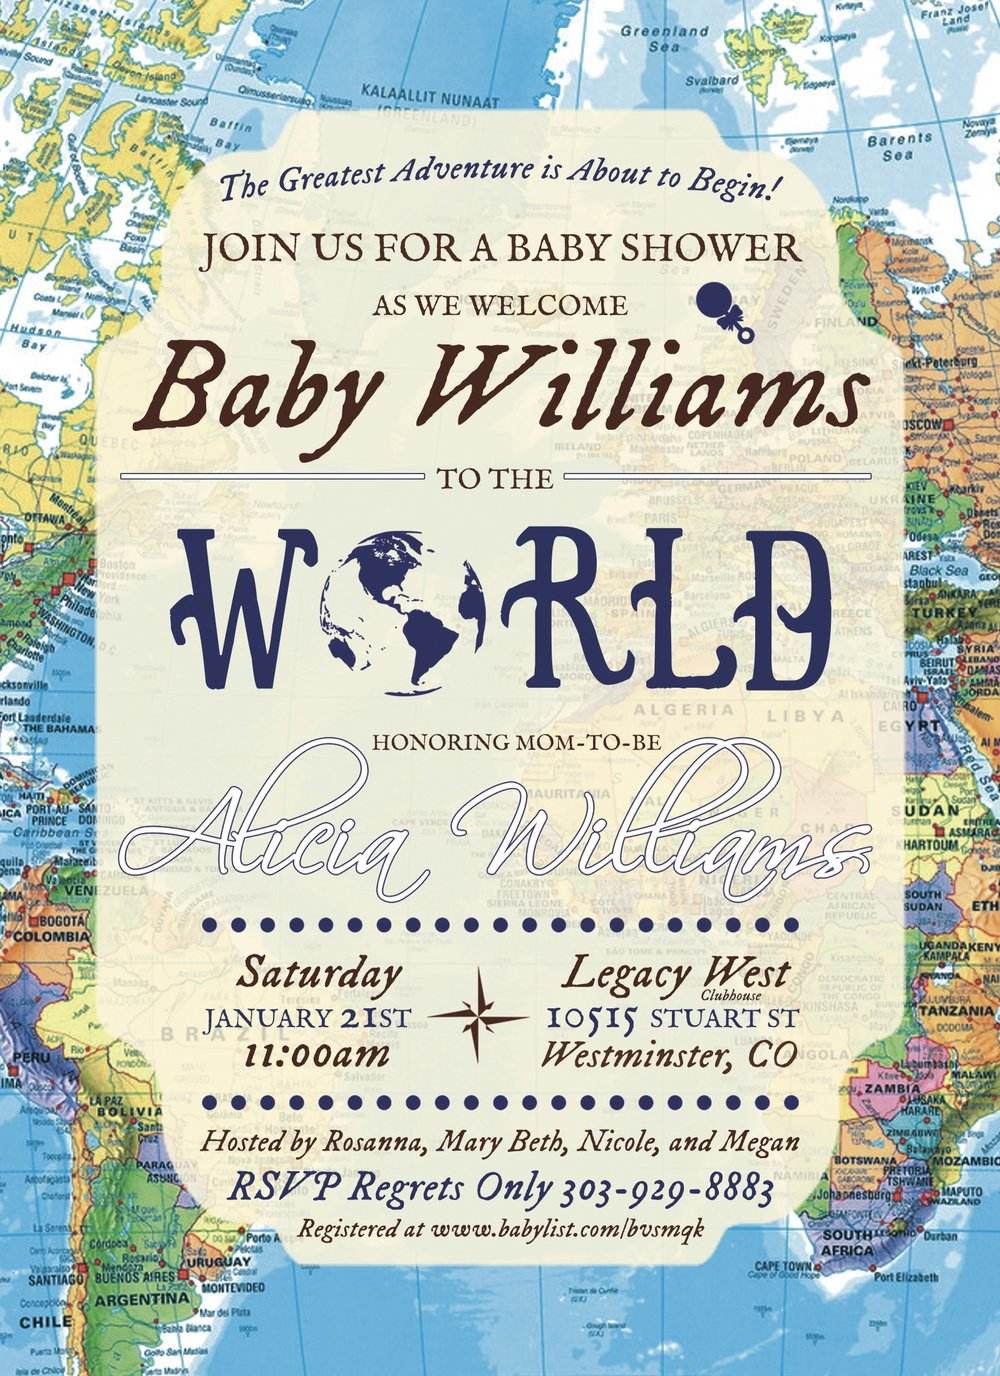 Williams Baby Shower Front copy.jpg